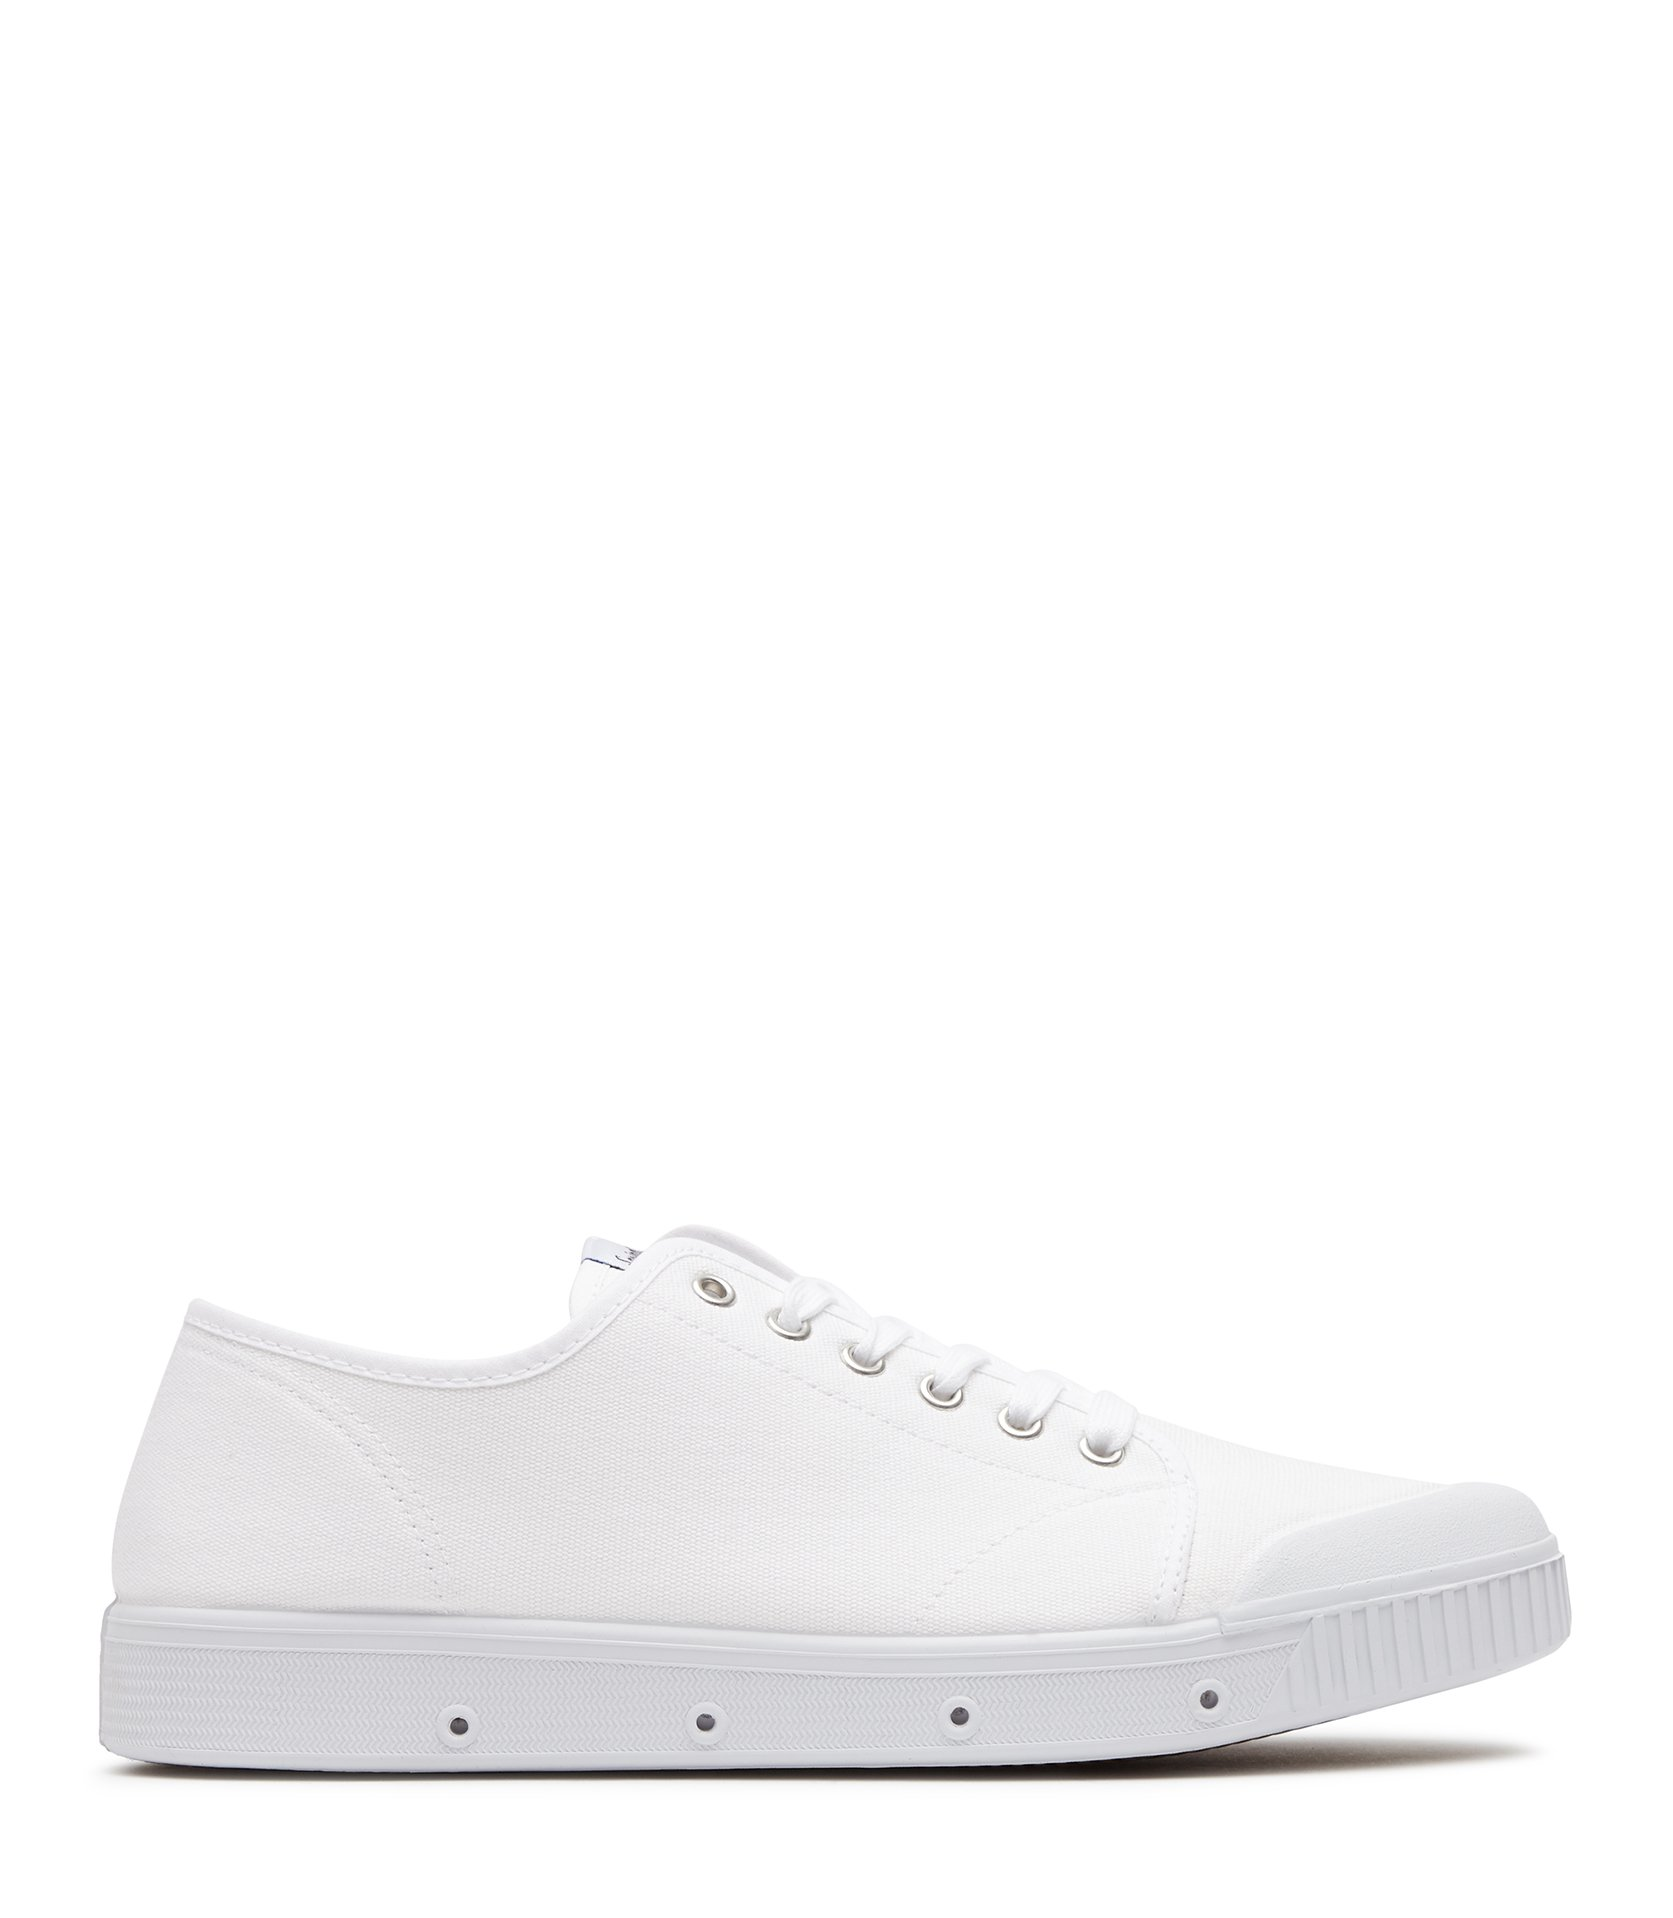 Reiss White Spring Court Canvas Sneakers